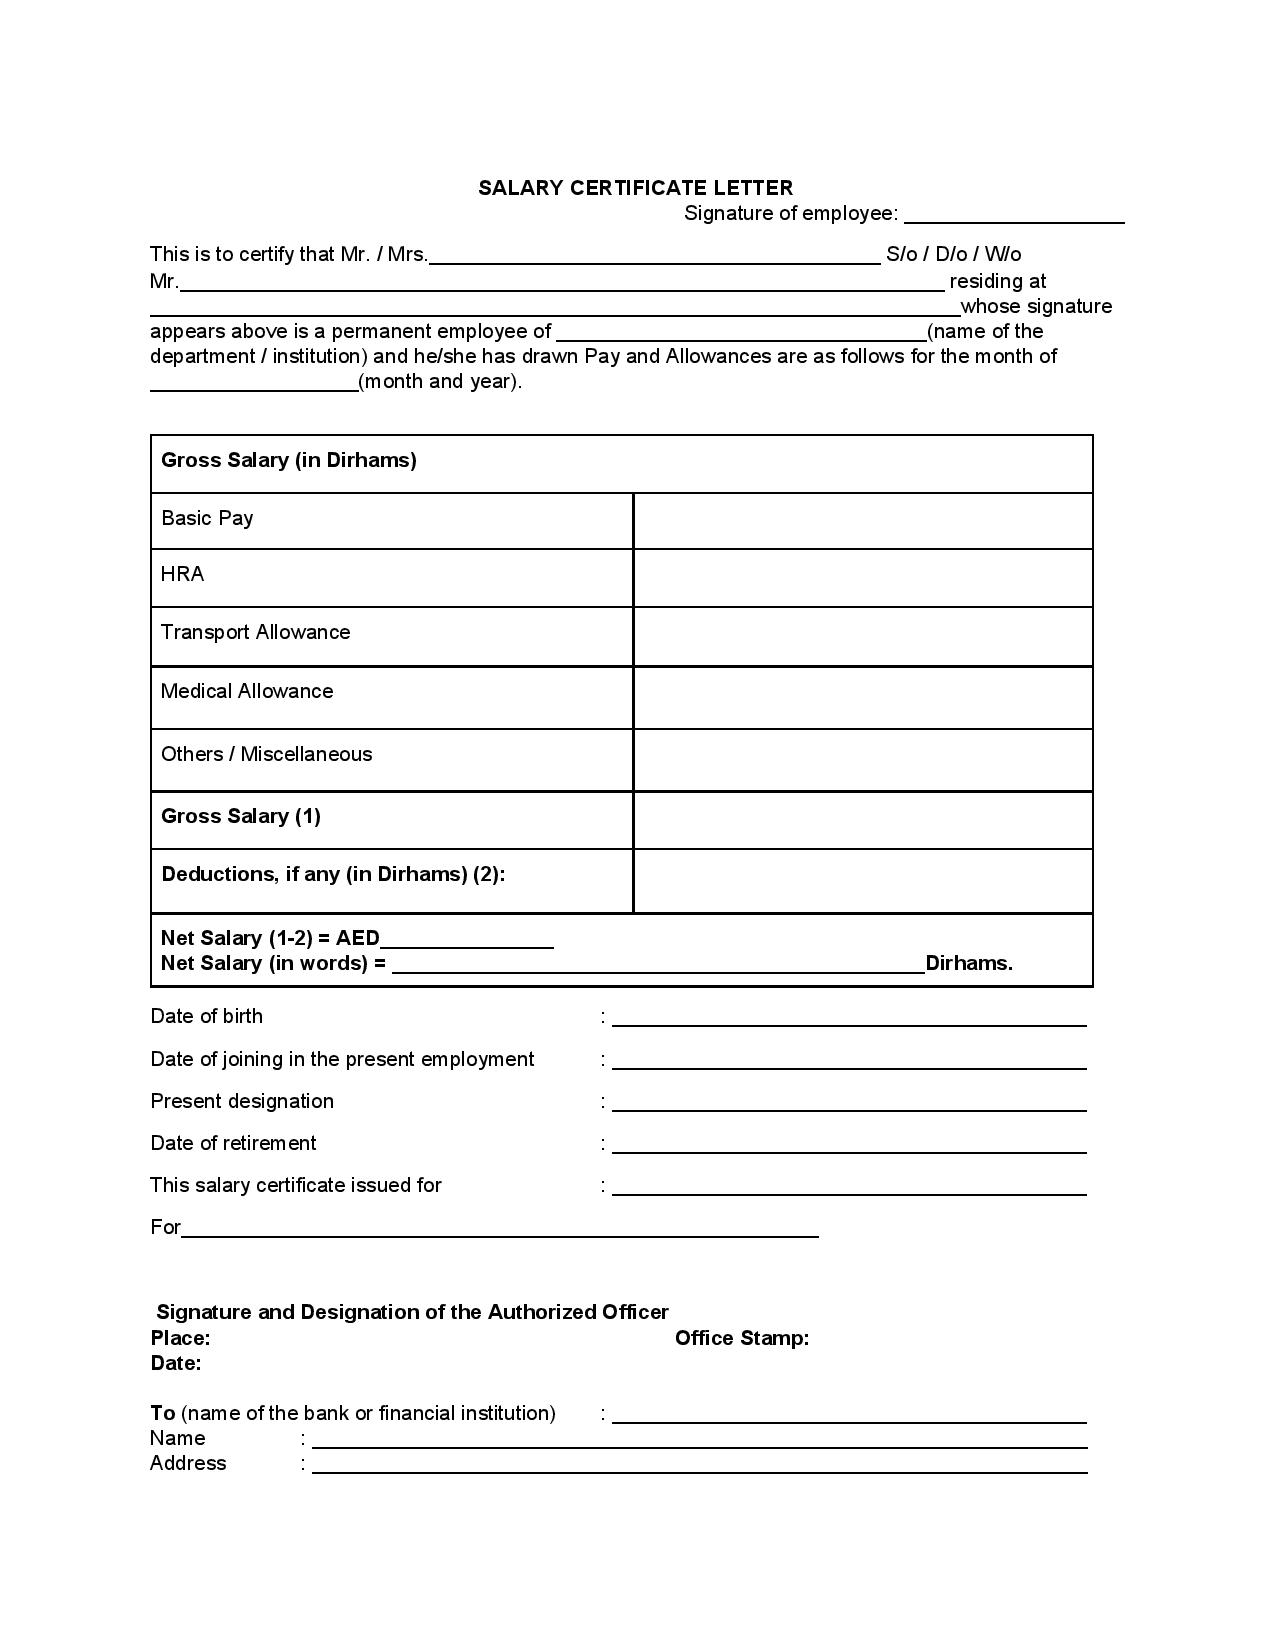 Salary certificate in uae salary certificate letter thecheapjerseys